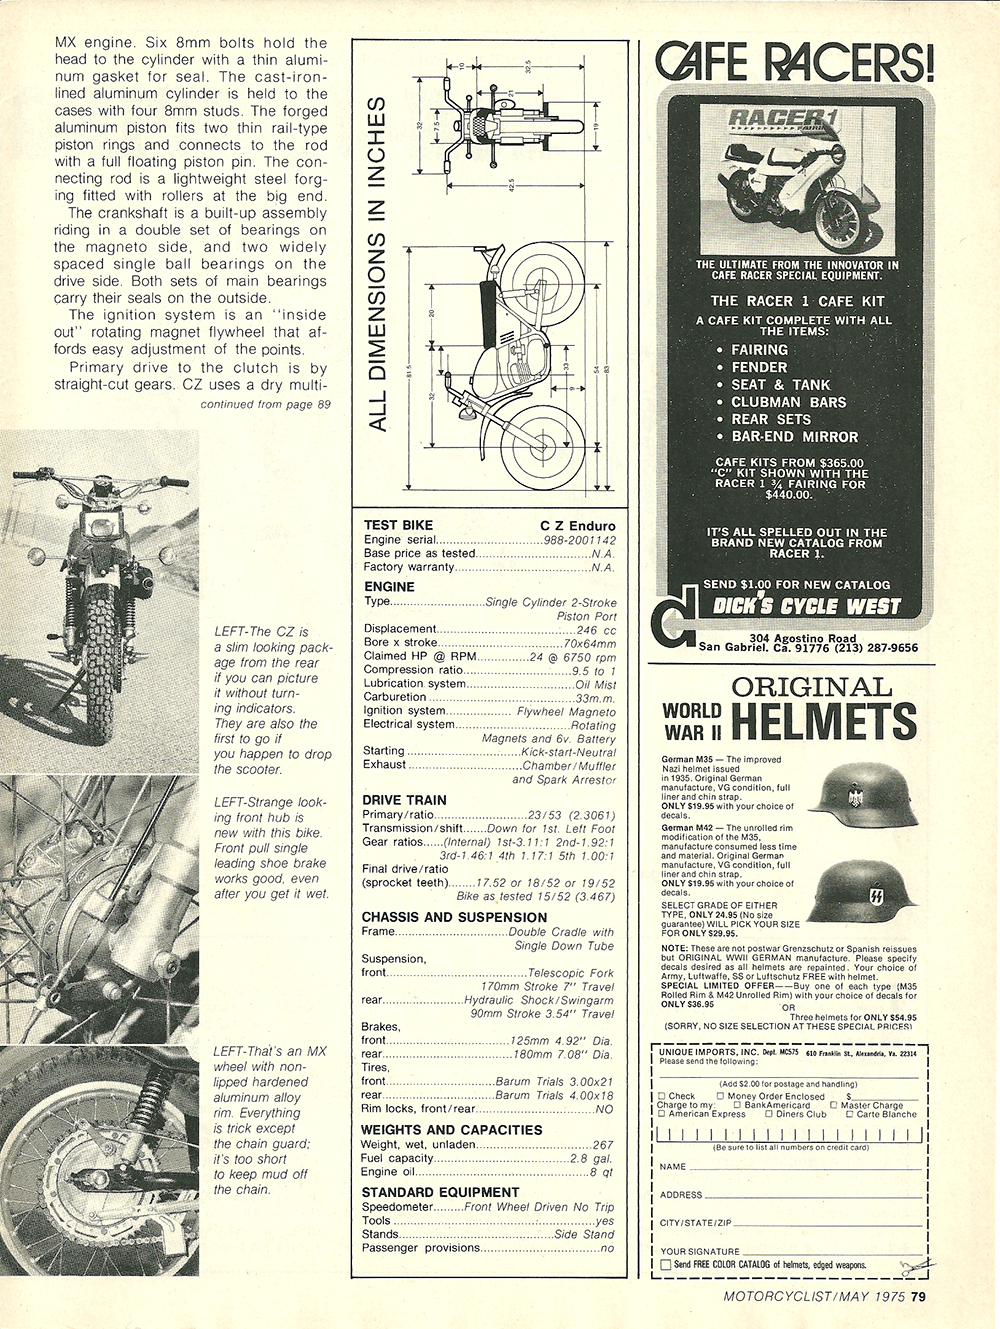 1975 CZ 250 Enduro road test 4.jpg